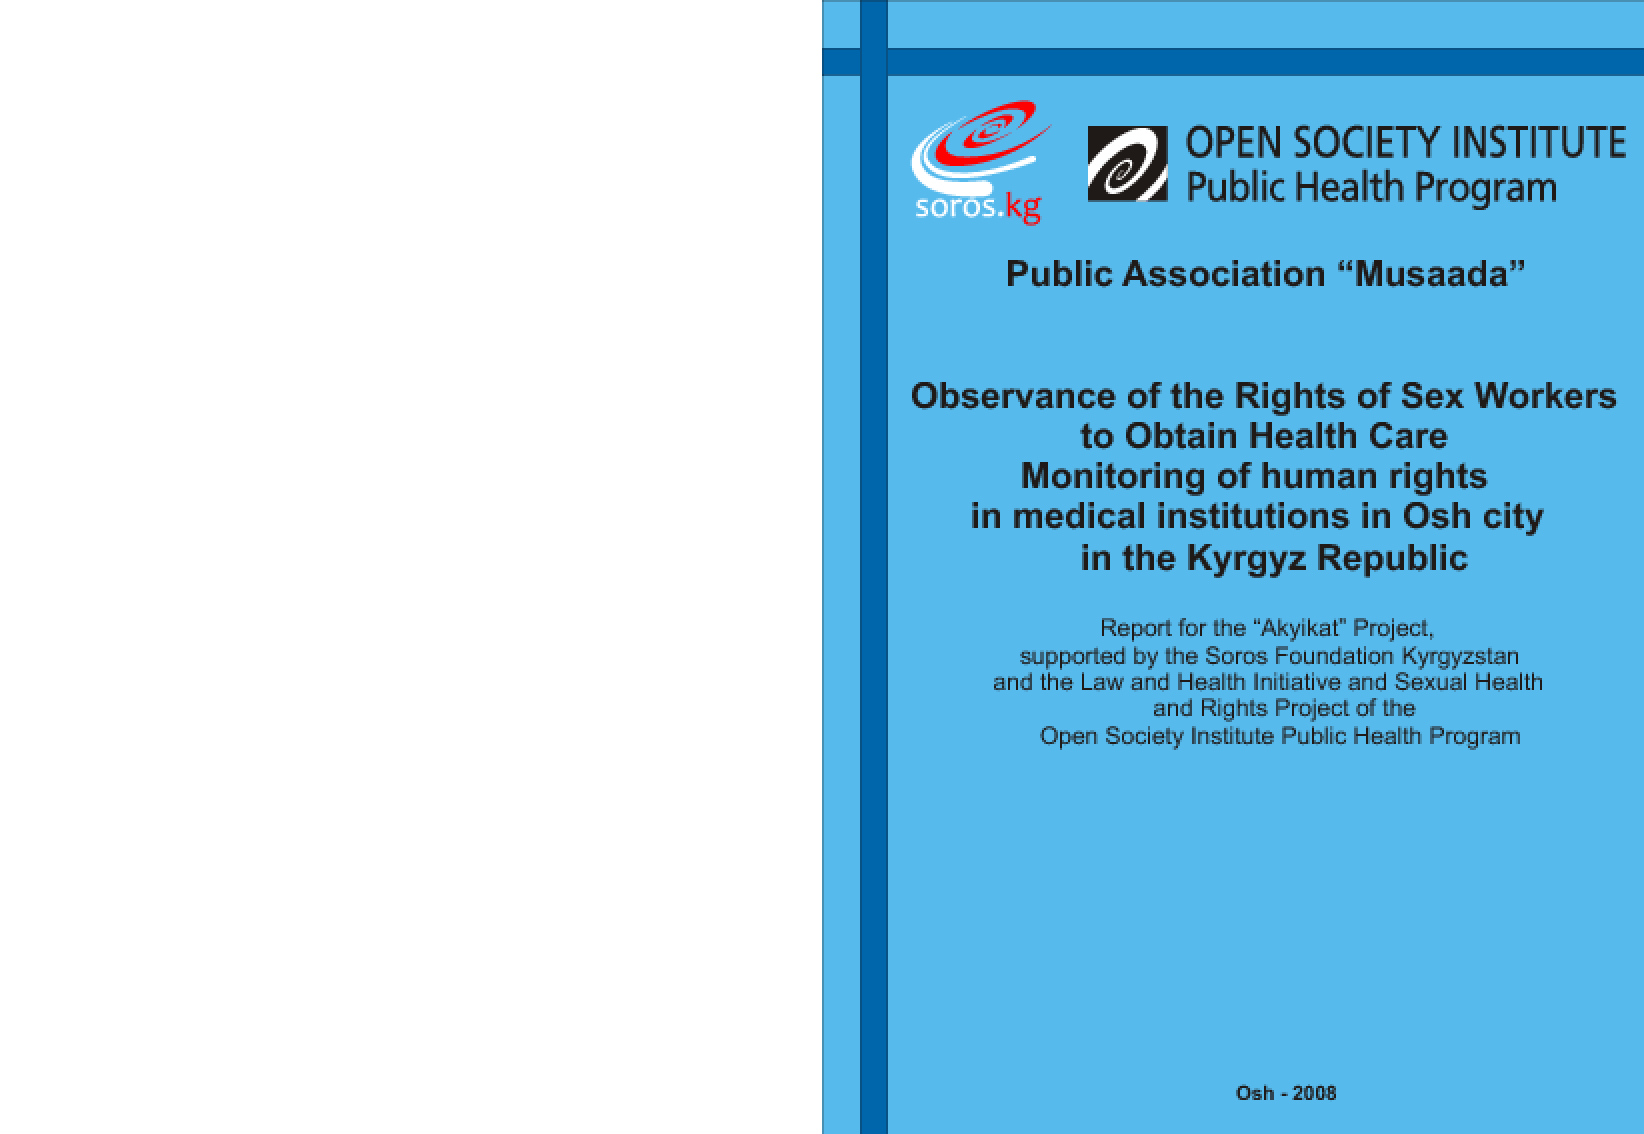 Observance of the Rights of Sex Workers to Obtain Health Care: Monitoring of Human Rights in Medical Institutions in Osh City in the Kyrgyz Republic